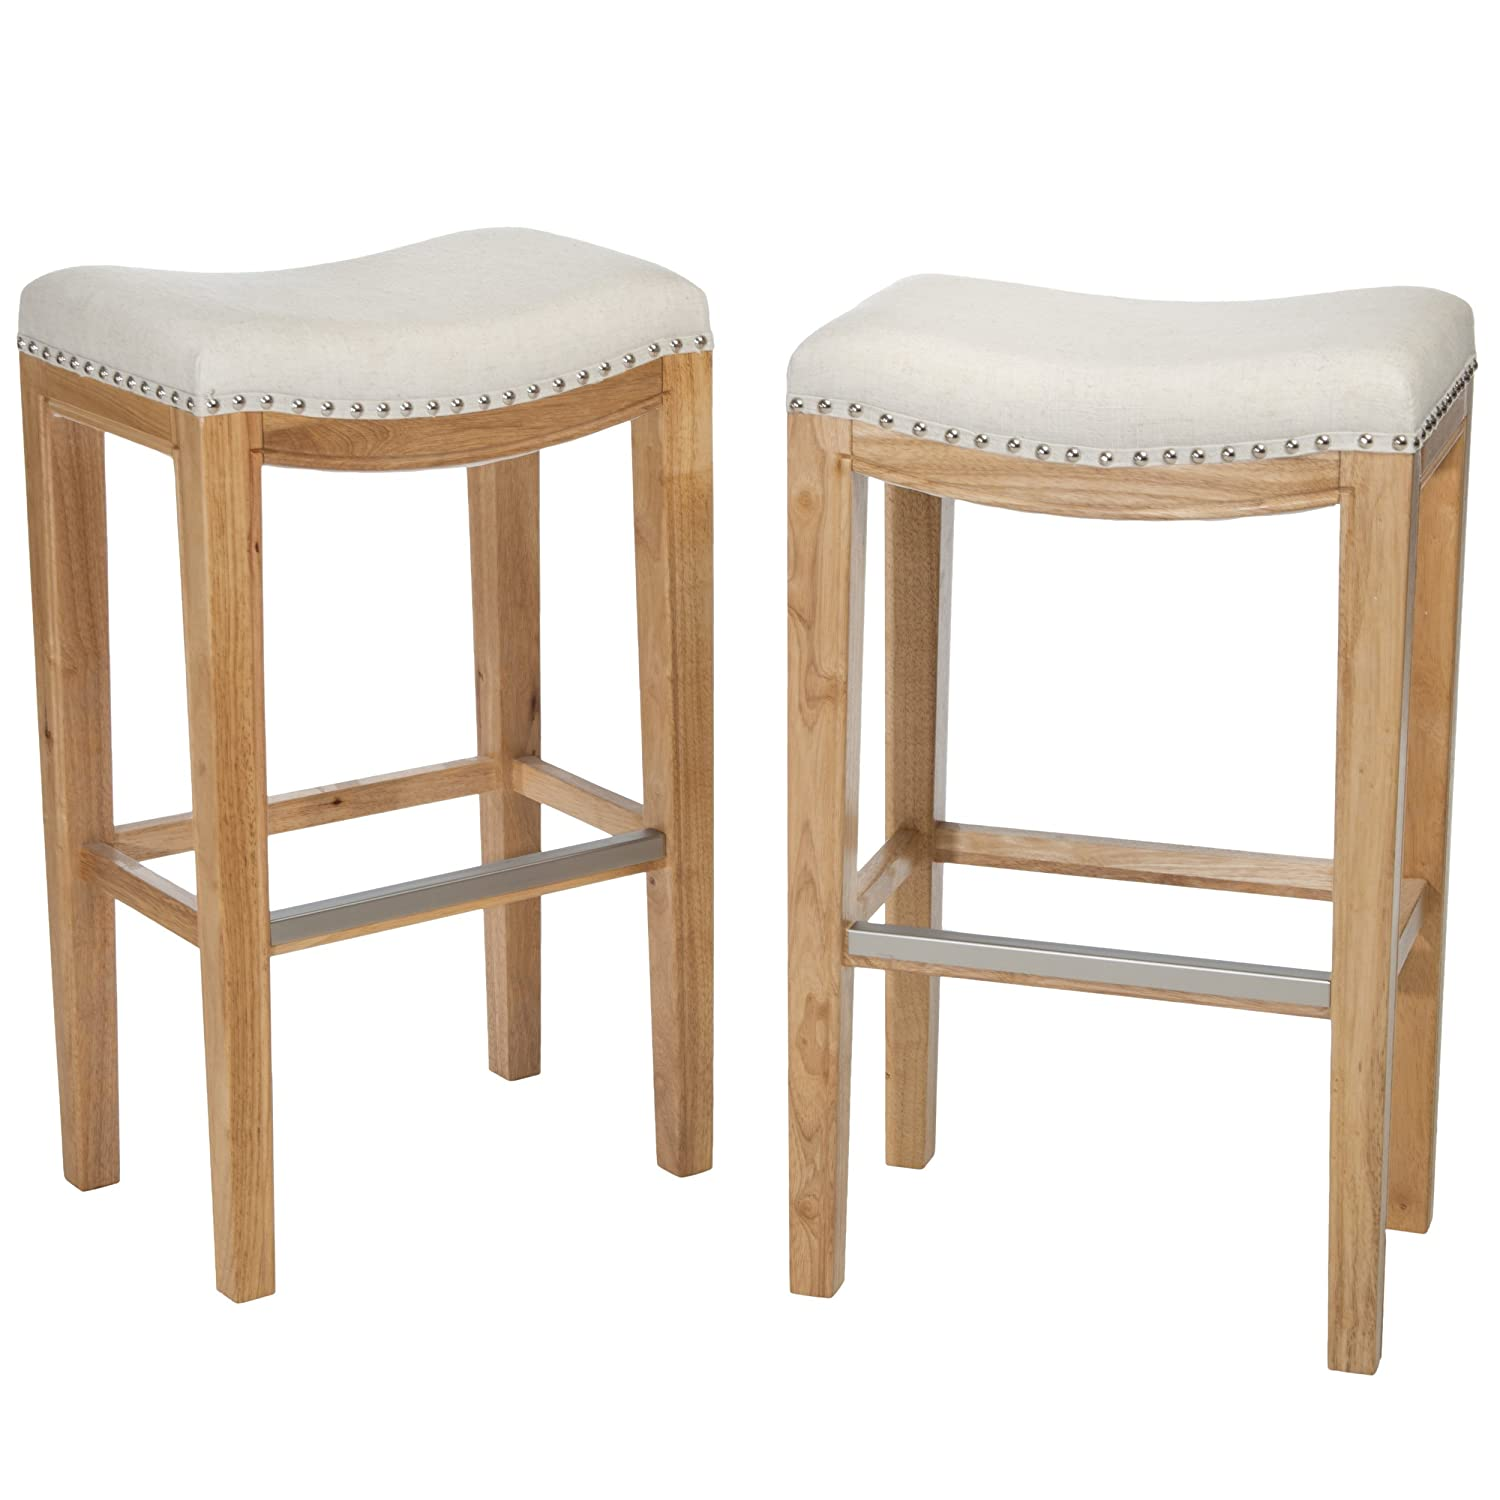 white backless bar stools. Amazon.com: Best Selling Andres Backless Bar Stools, Off-White, Set Of 2: Kitchen \u0026 Dining White Stools D